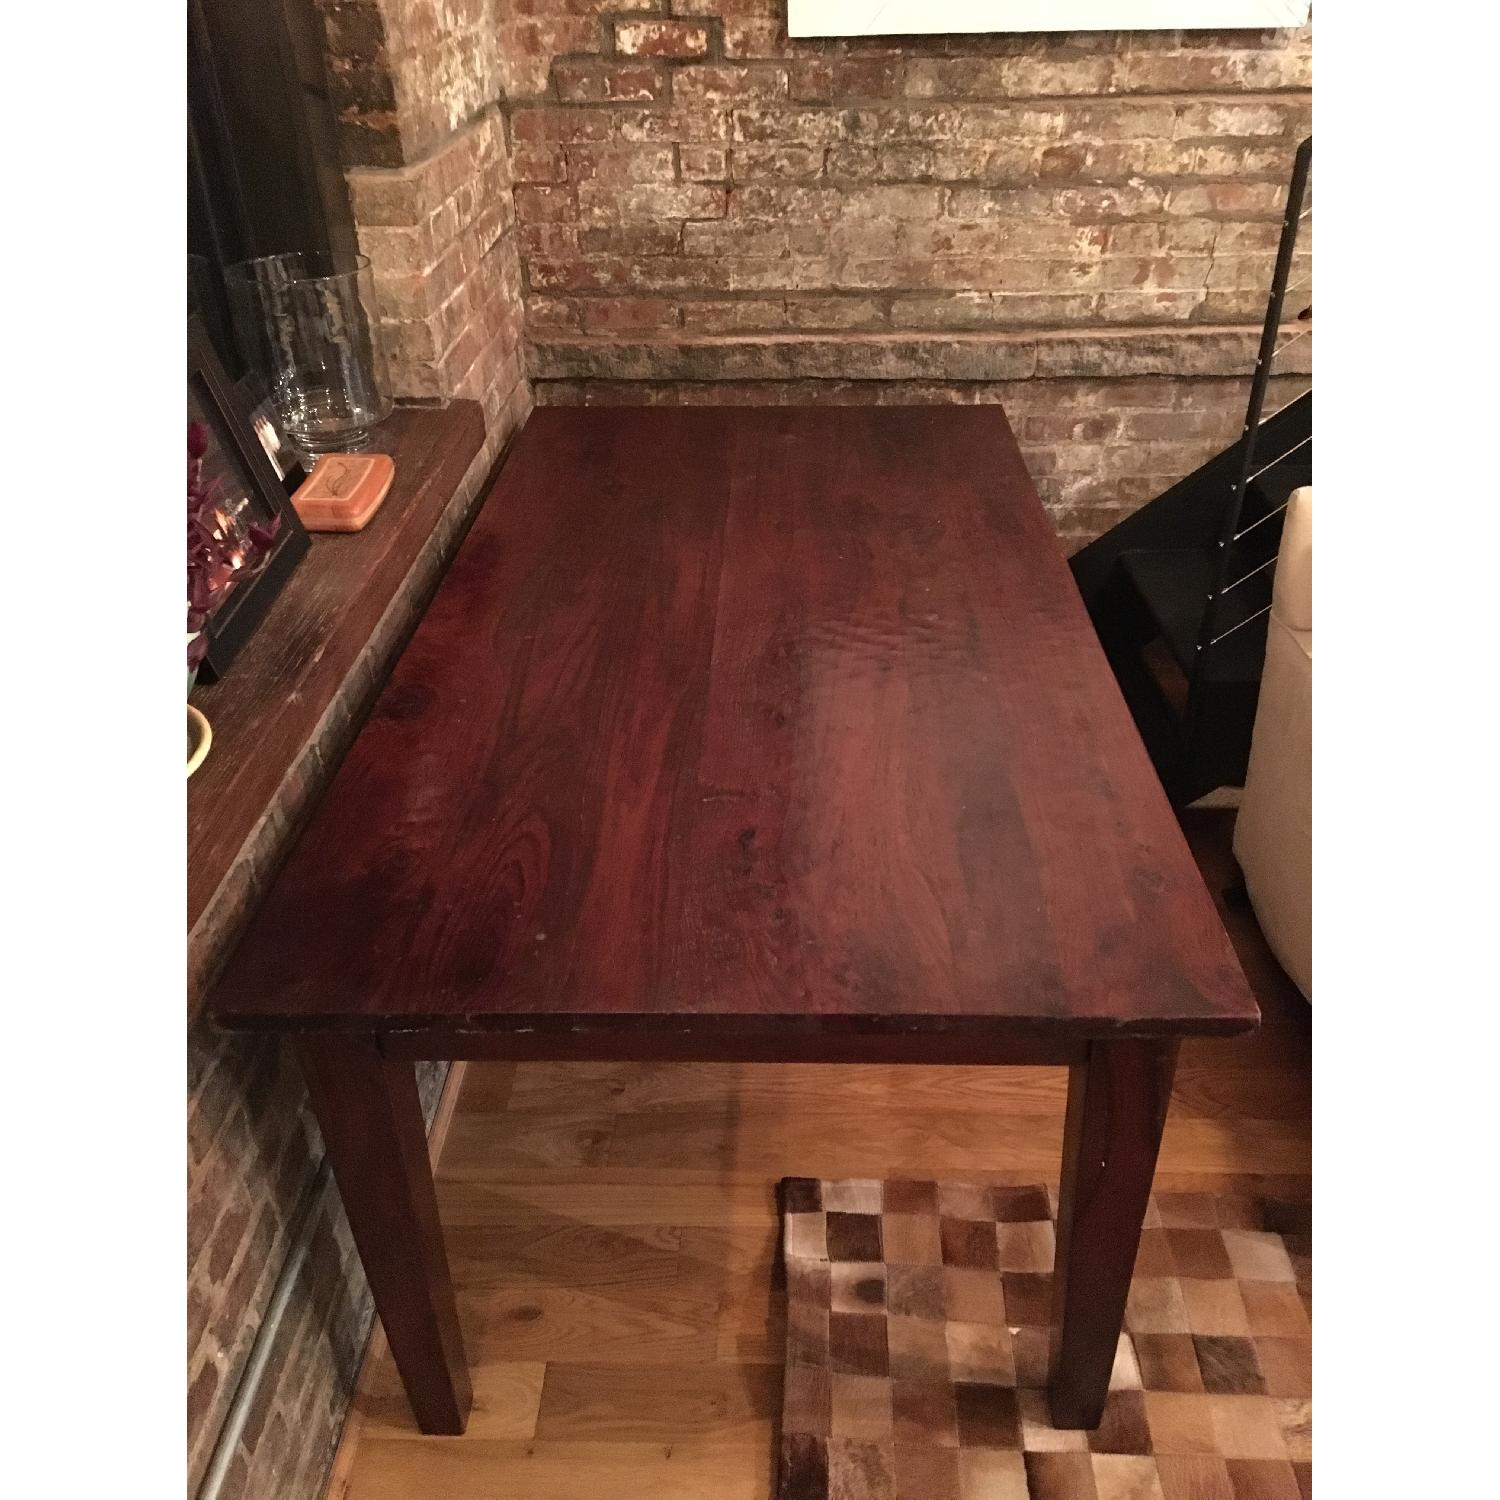 Restoration Hardware Dining Table in Cherry Finish - image-2